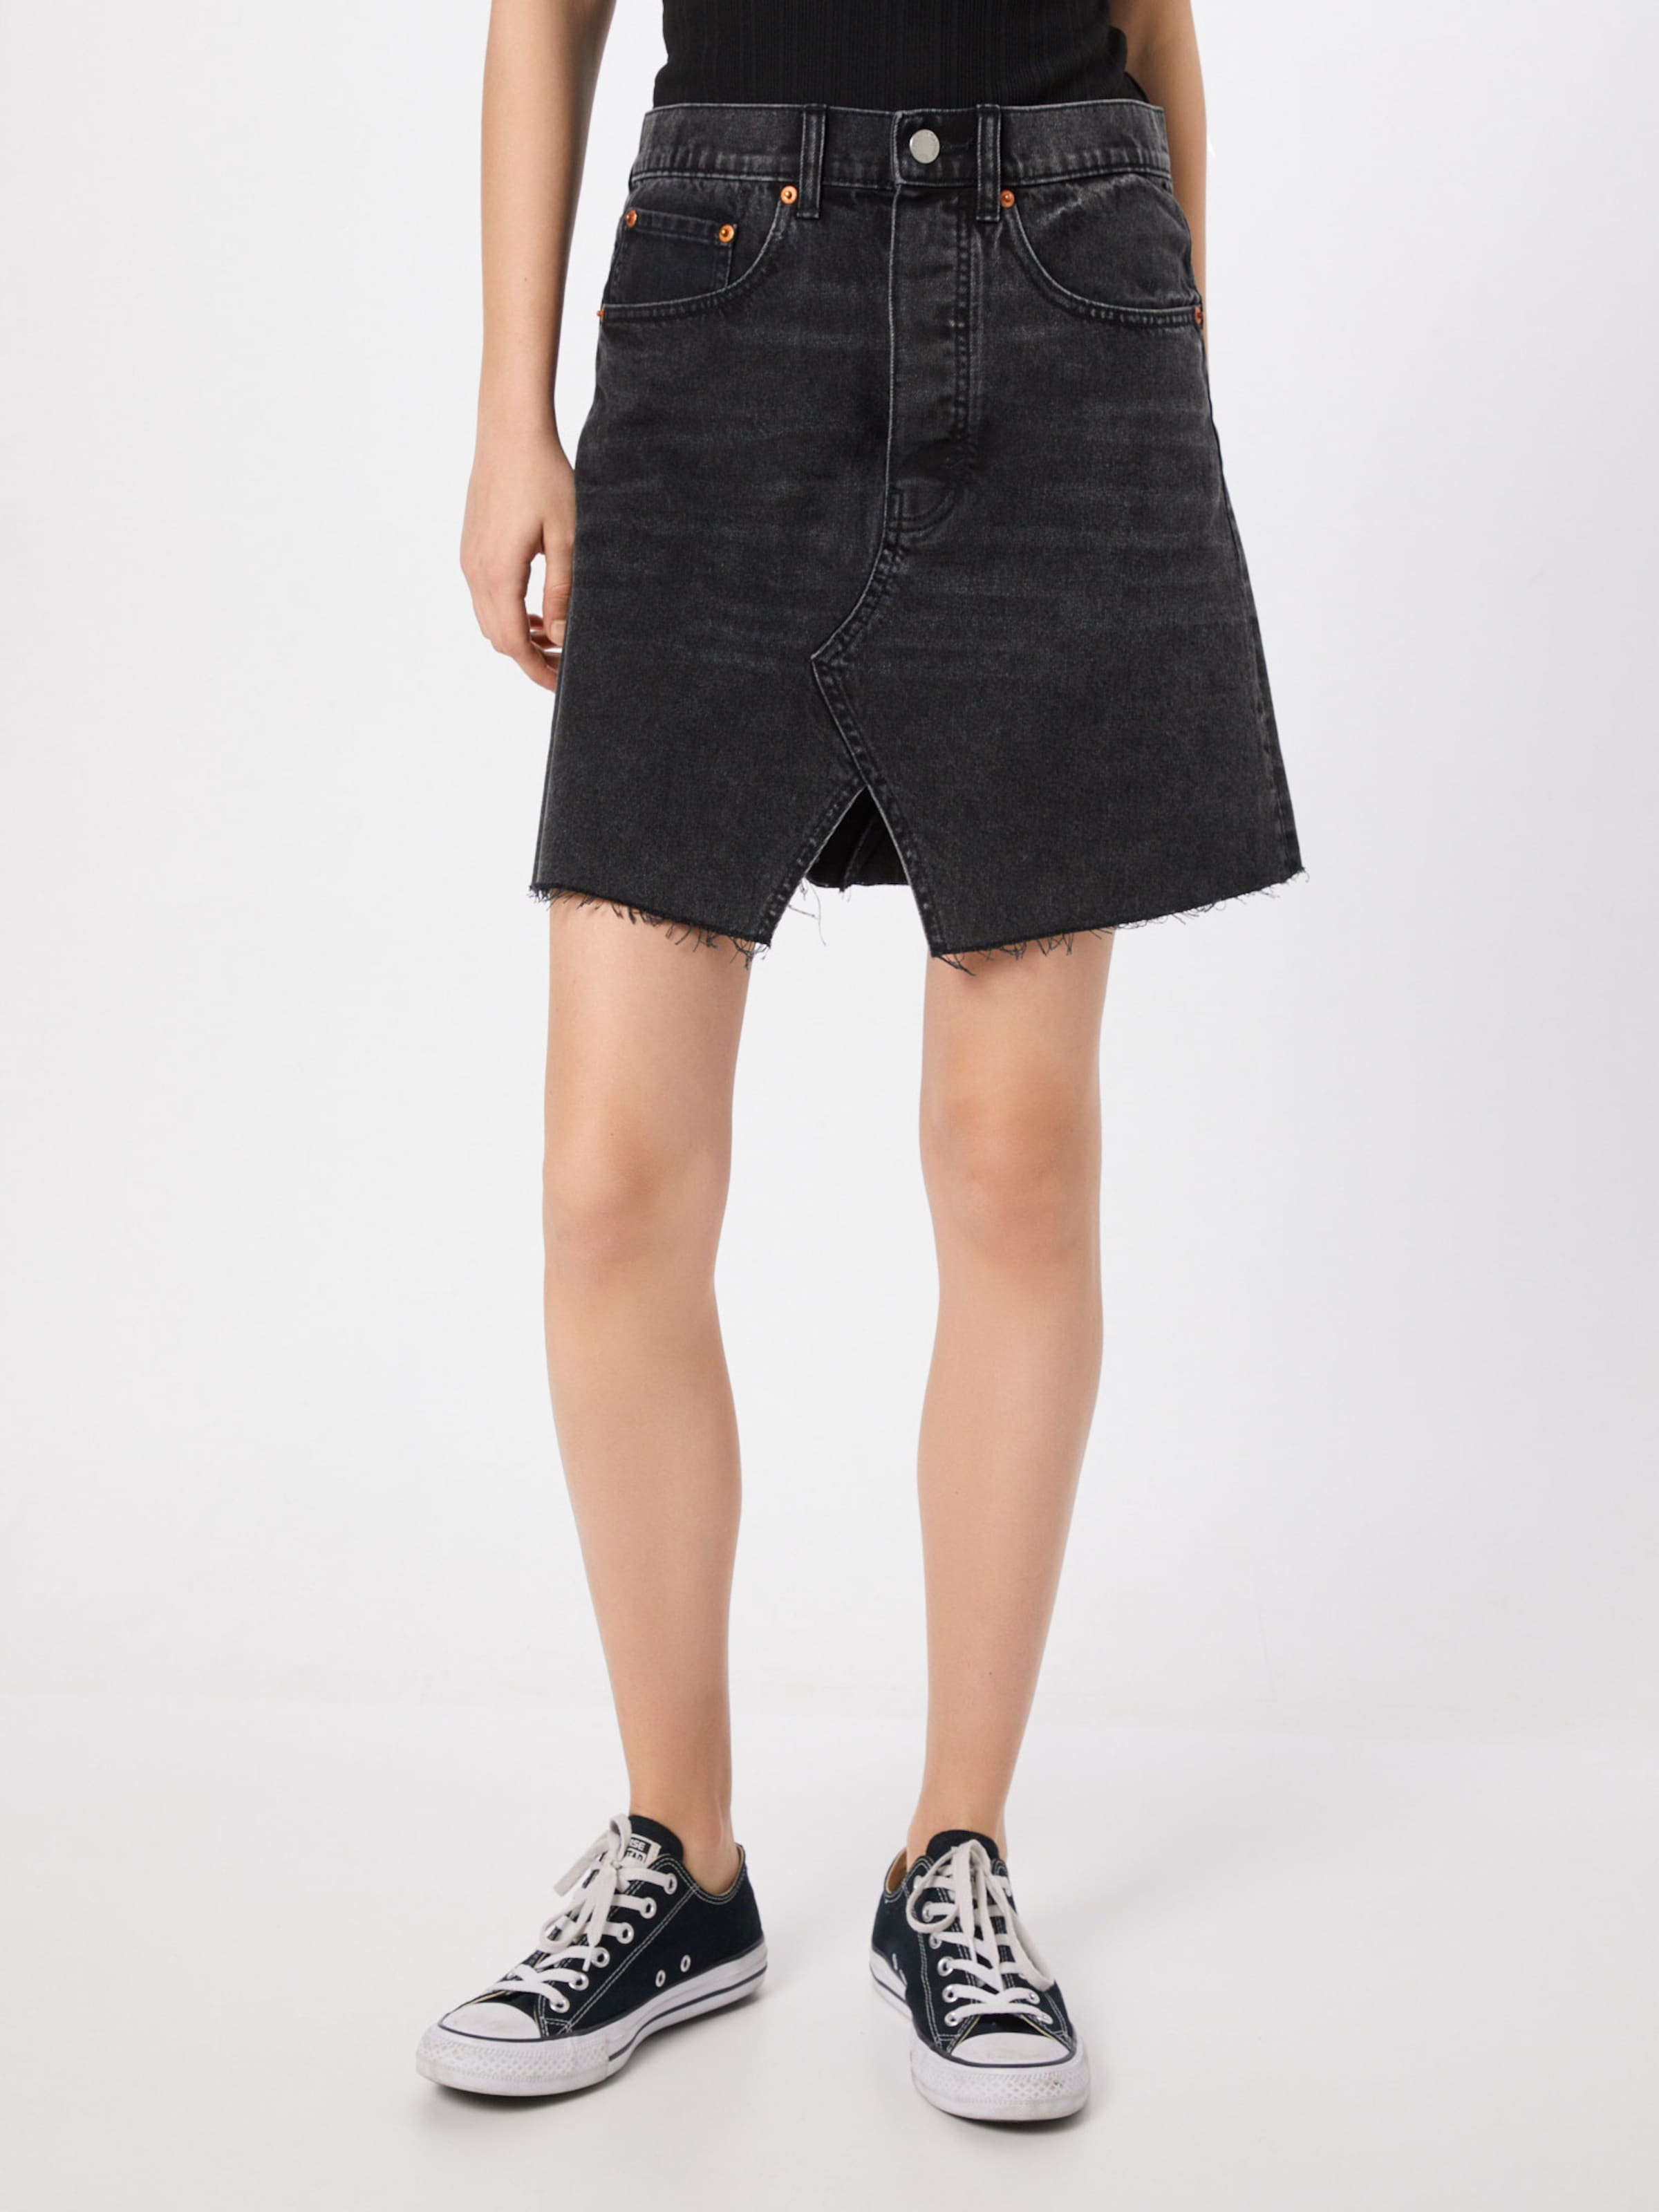 Jupe 'shrunken Skirt' En Gris Monday Cheap Denim SzVUMpq